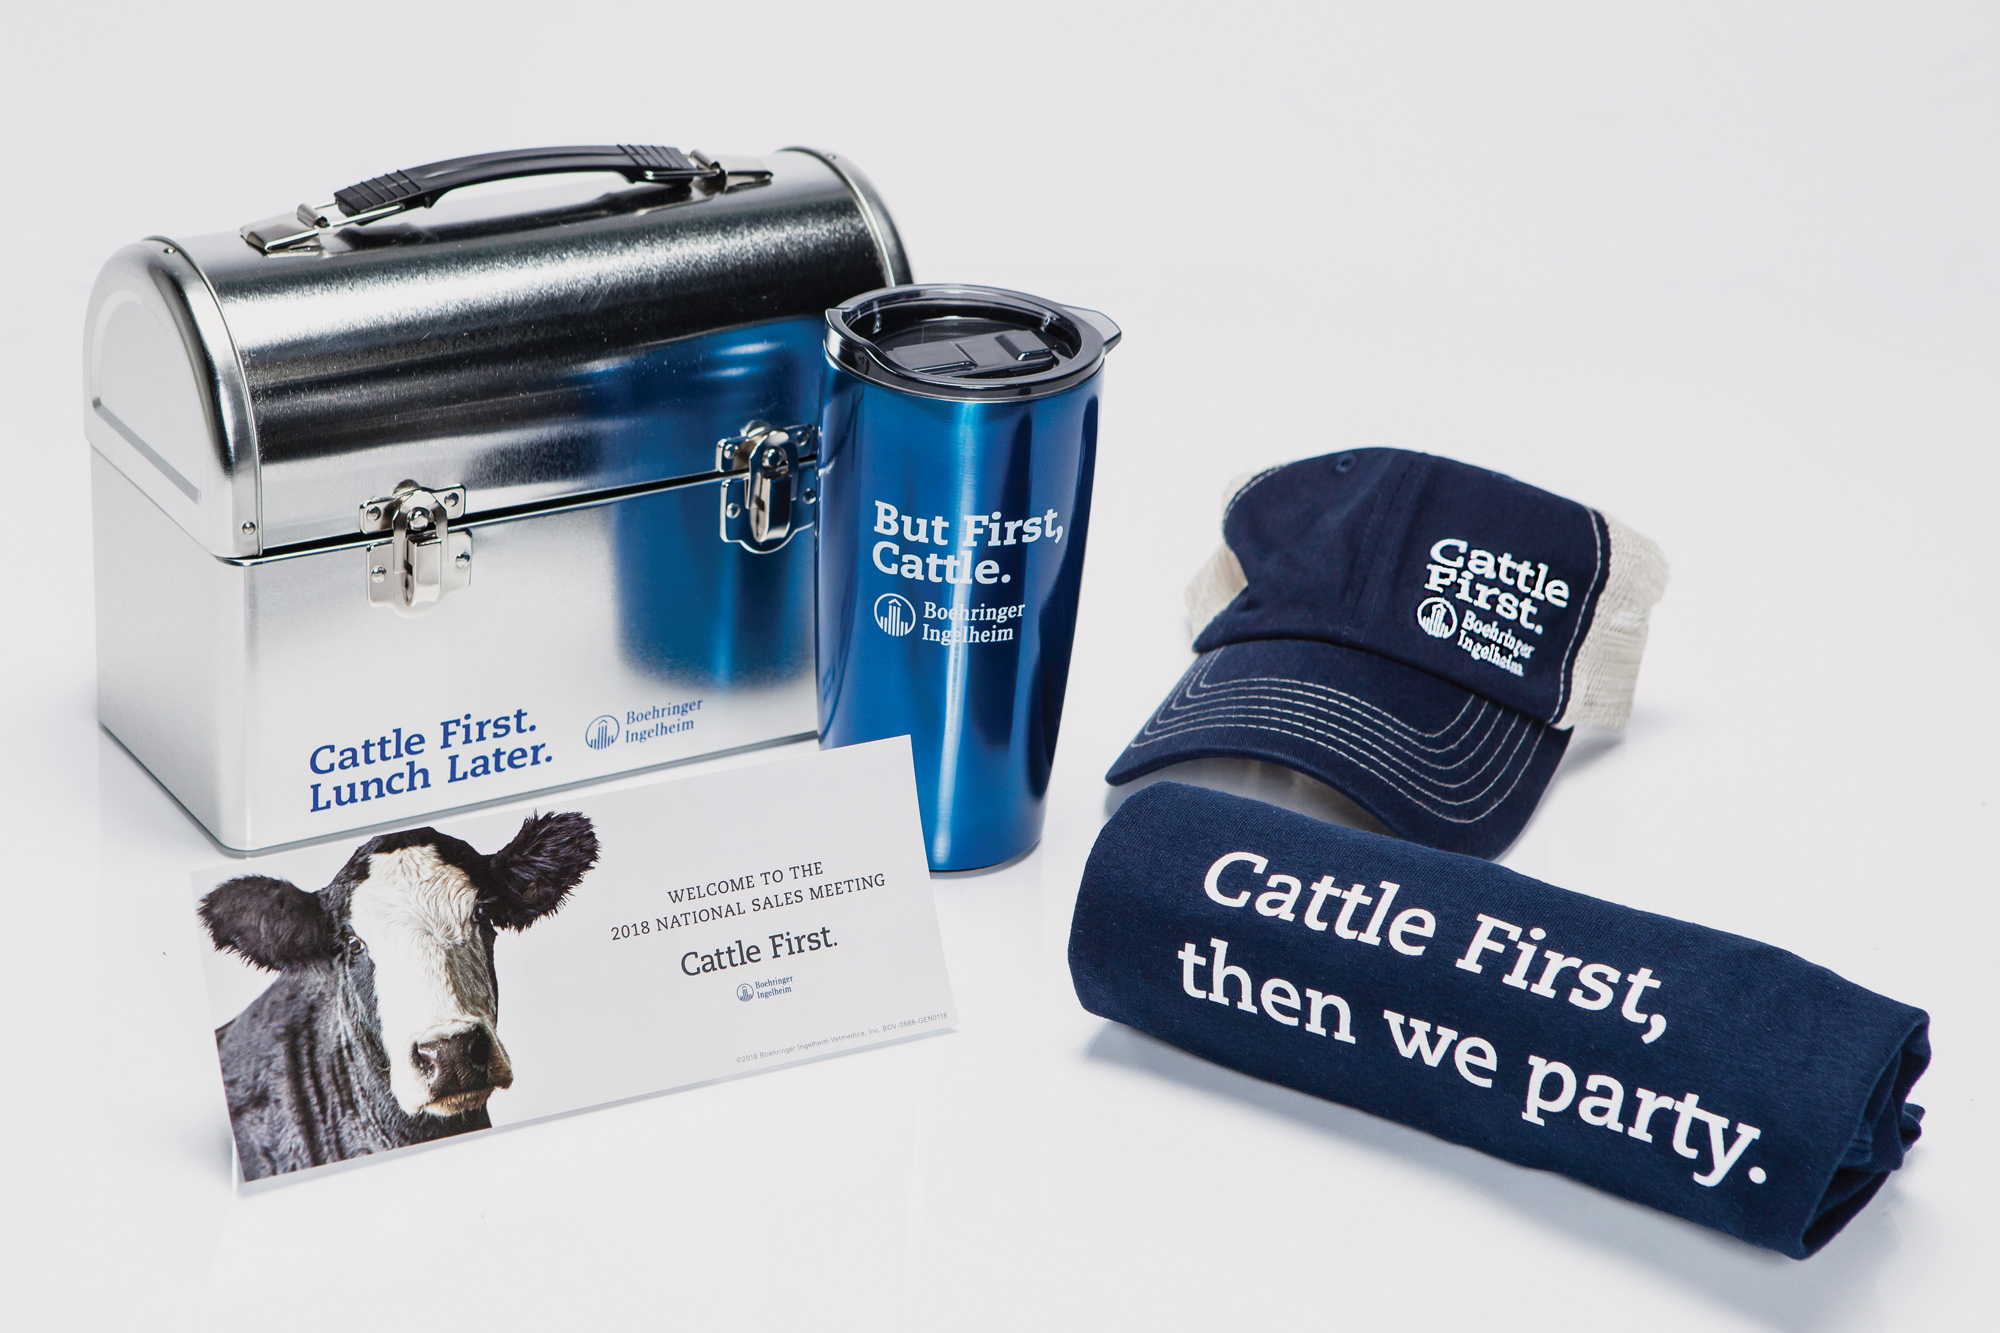 Cattle First internal promotion materials